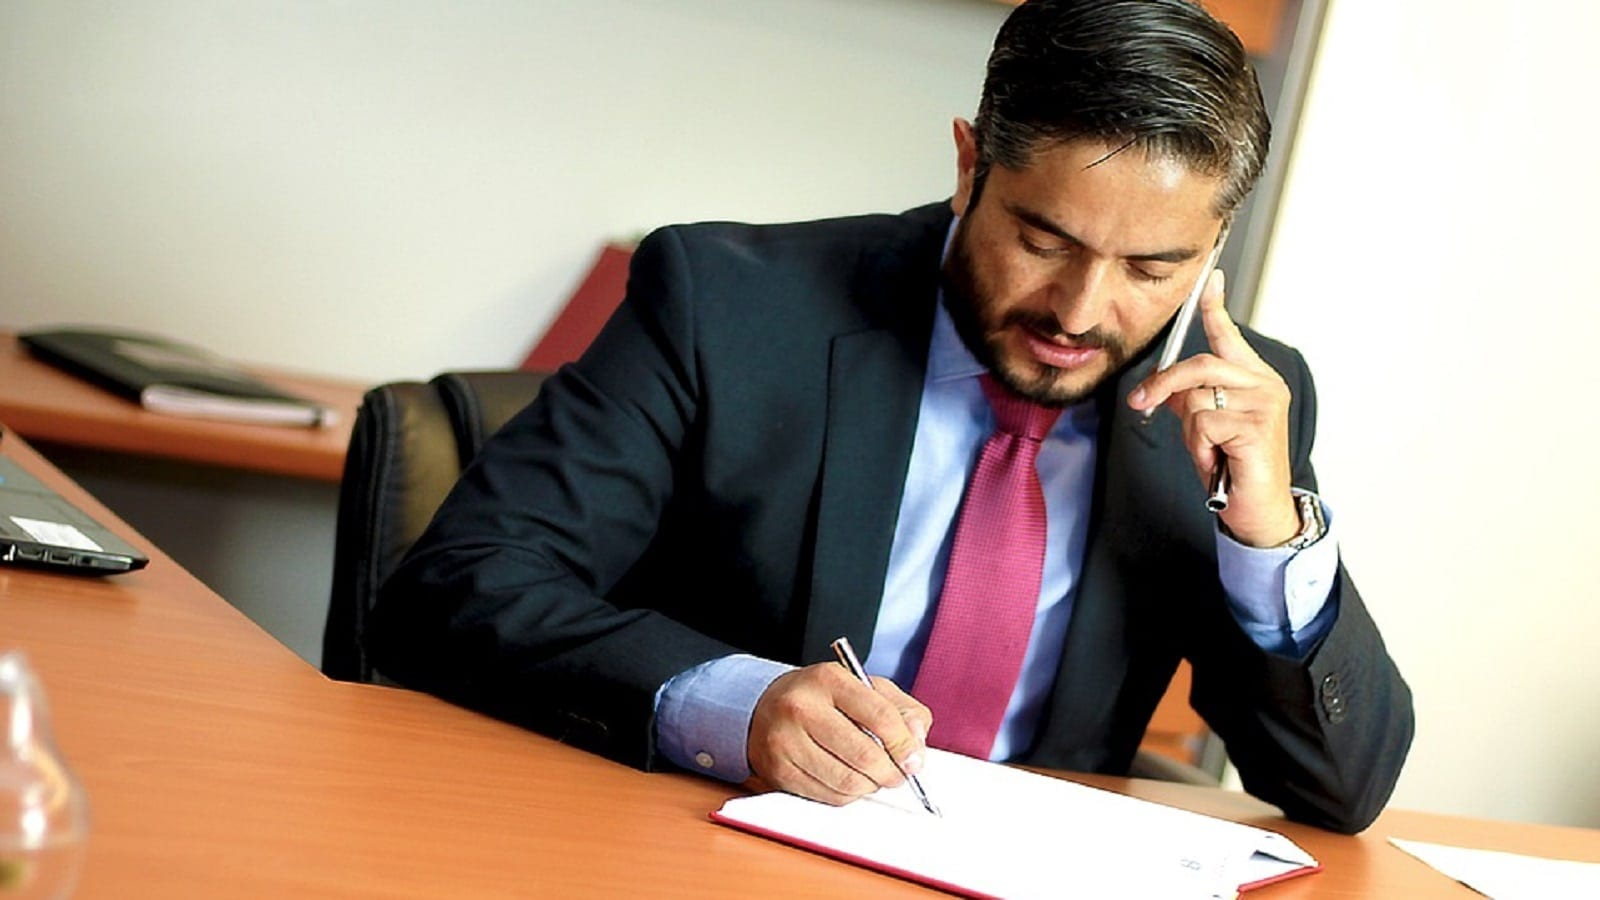 Attorney Talking On His Phone At His Desk Stock Photo